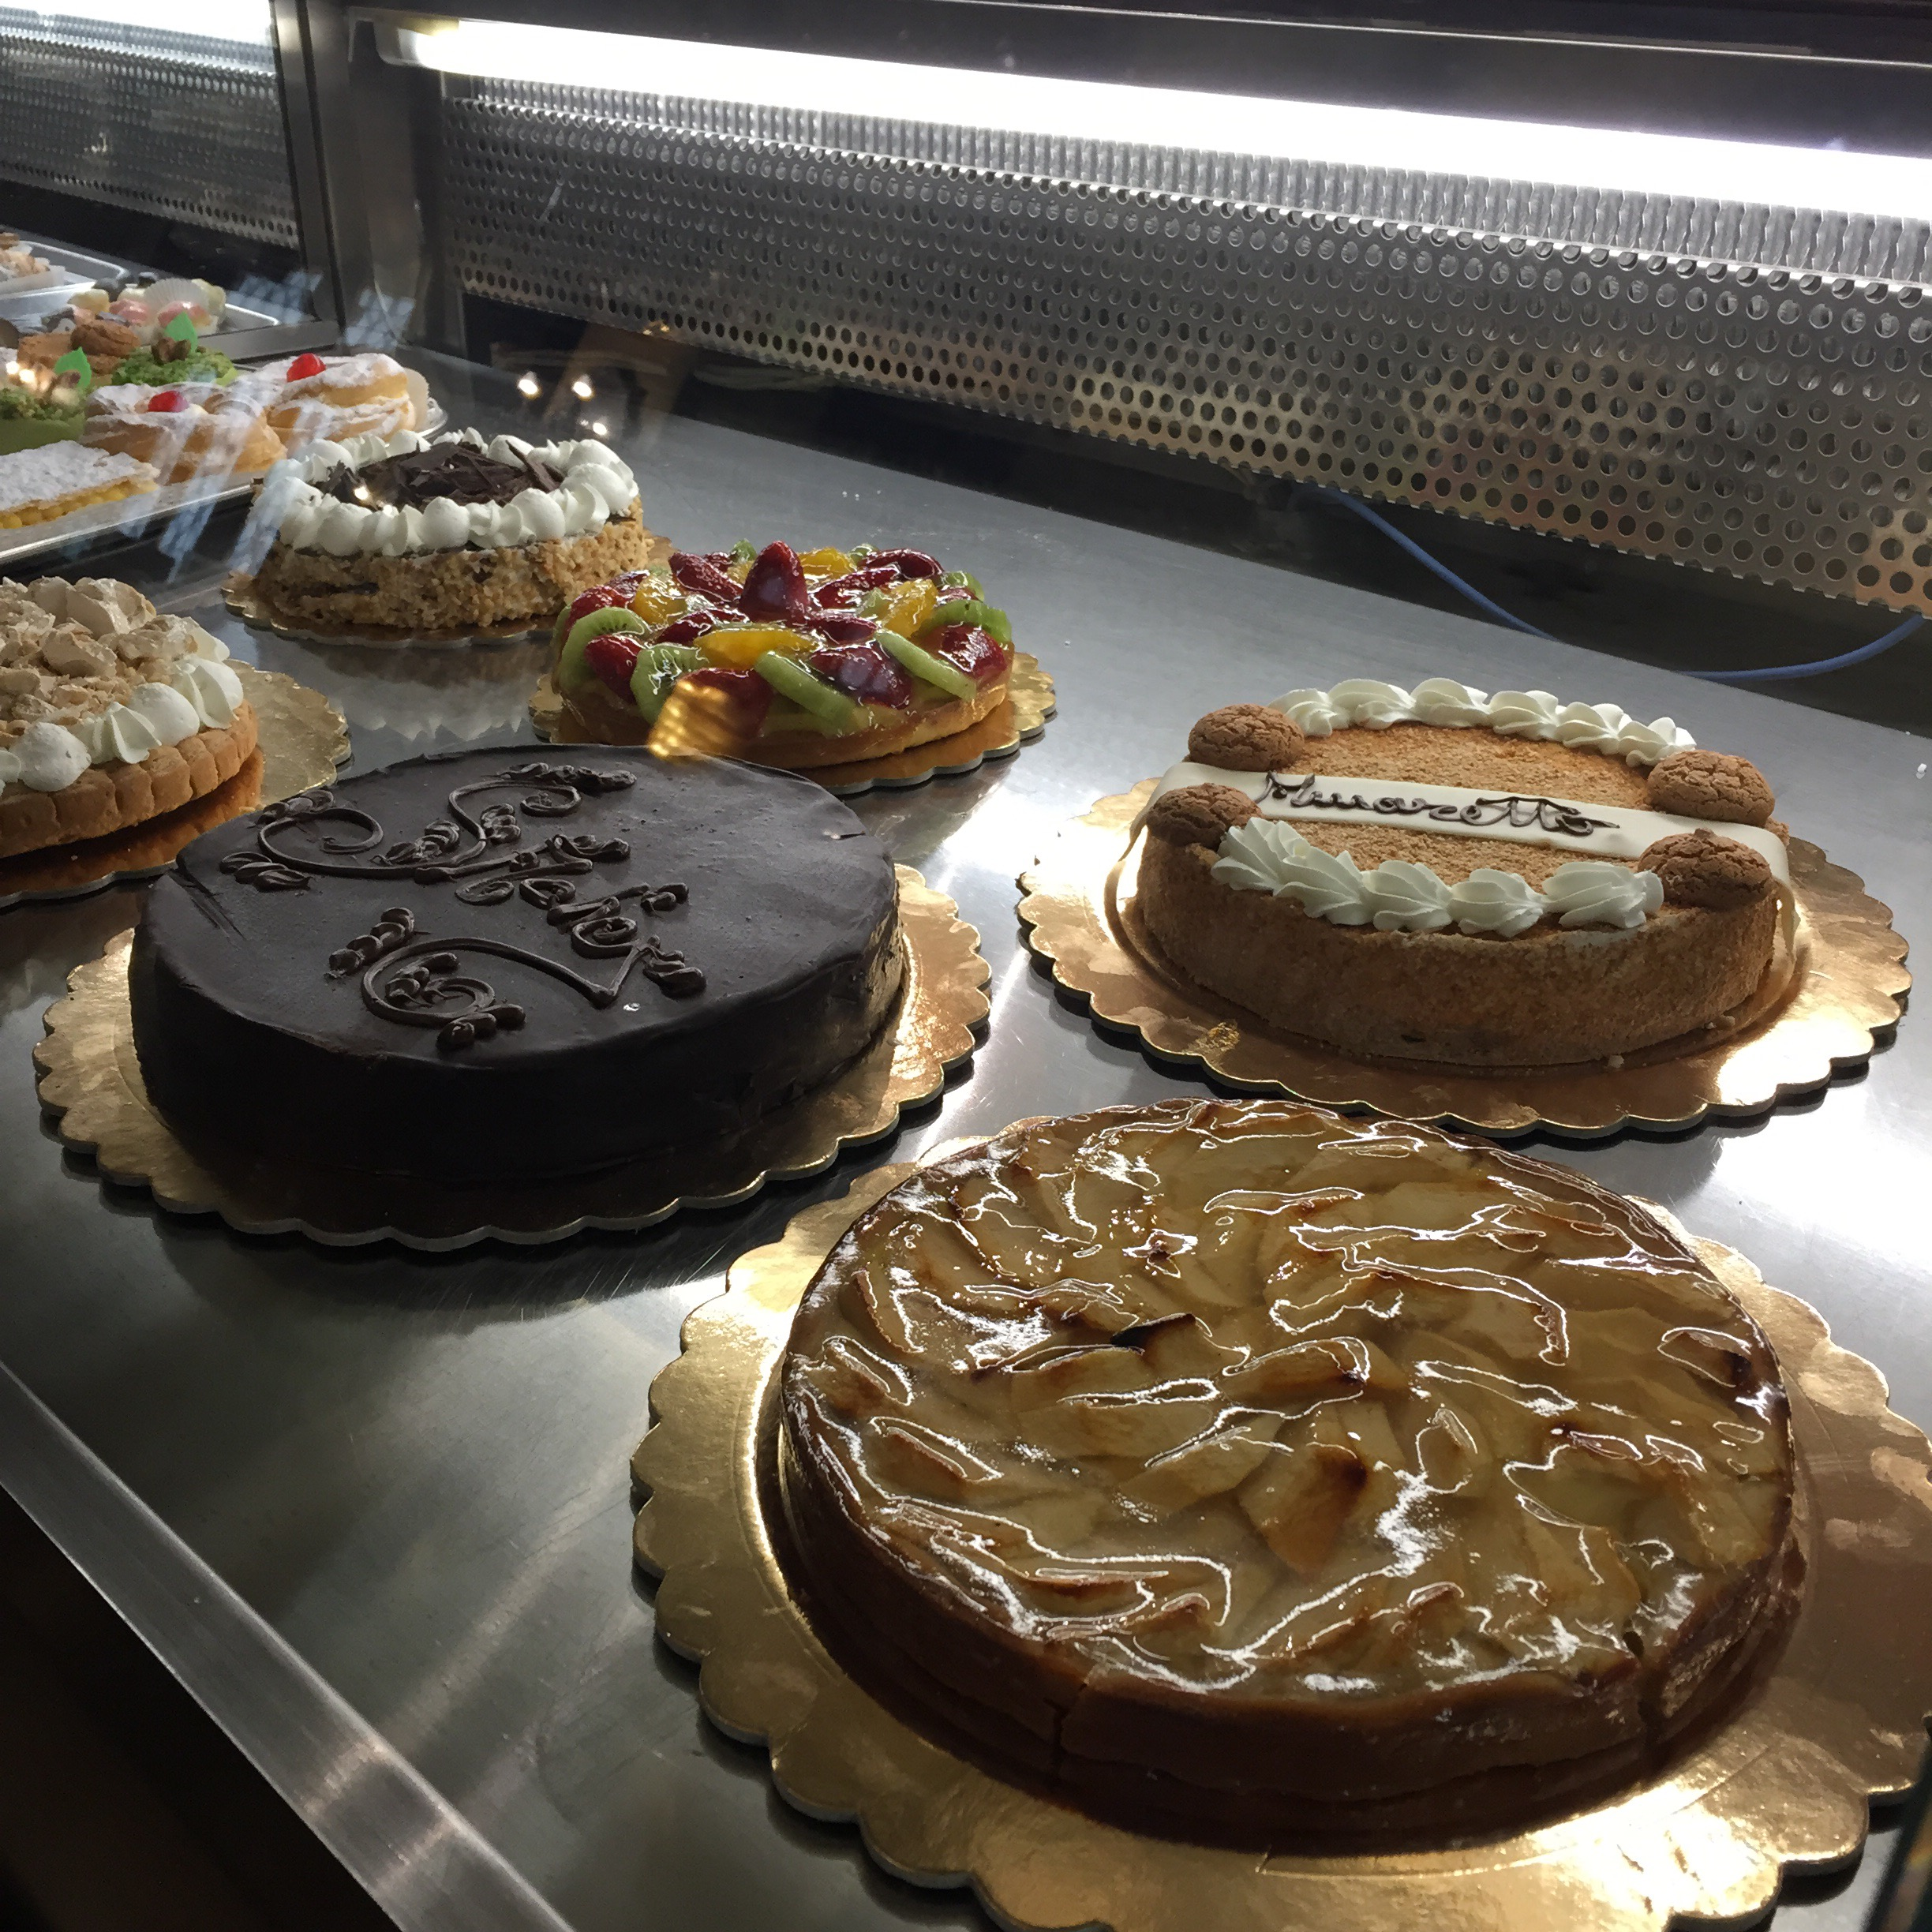 Torino is full of pasticcerie! Cakes are their thing aroudn here. A dream come true for those with a sweettooth